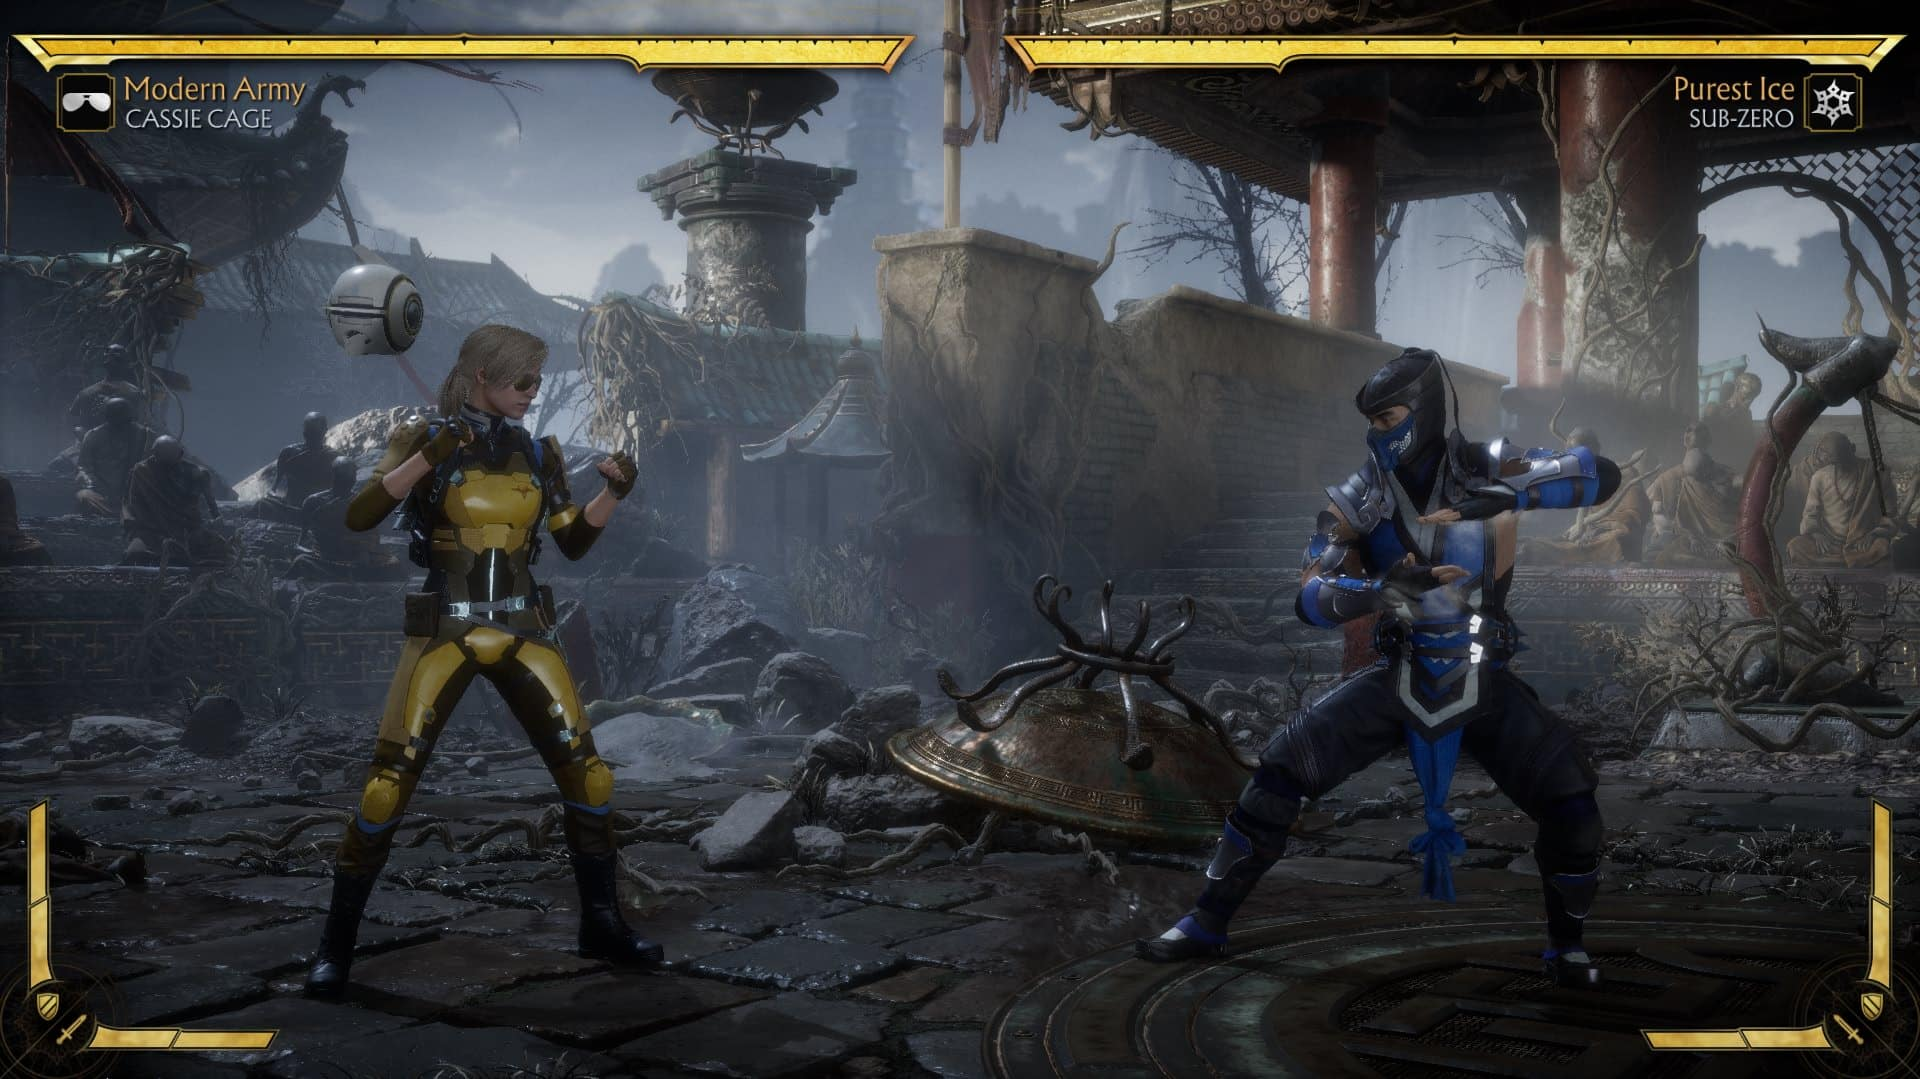 Mortal Kombat 11 fighting environment - Mortal Kombat 11 Review